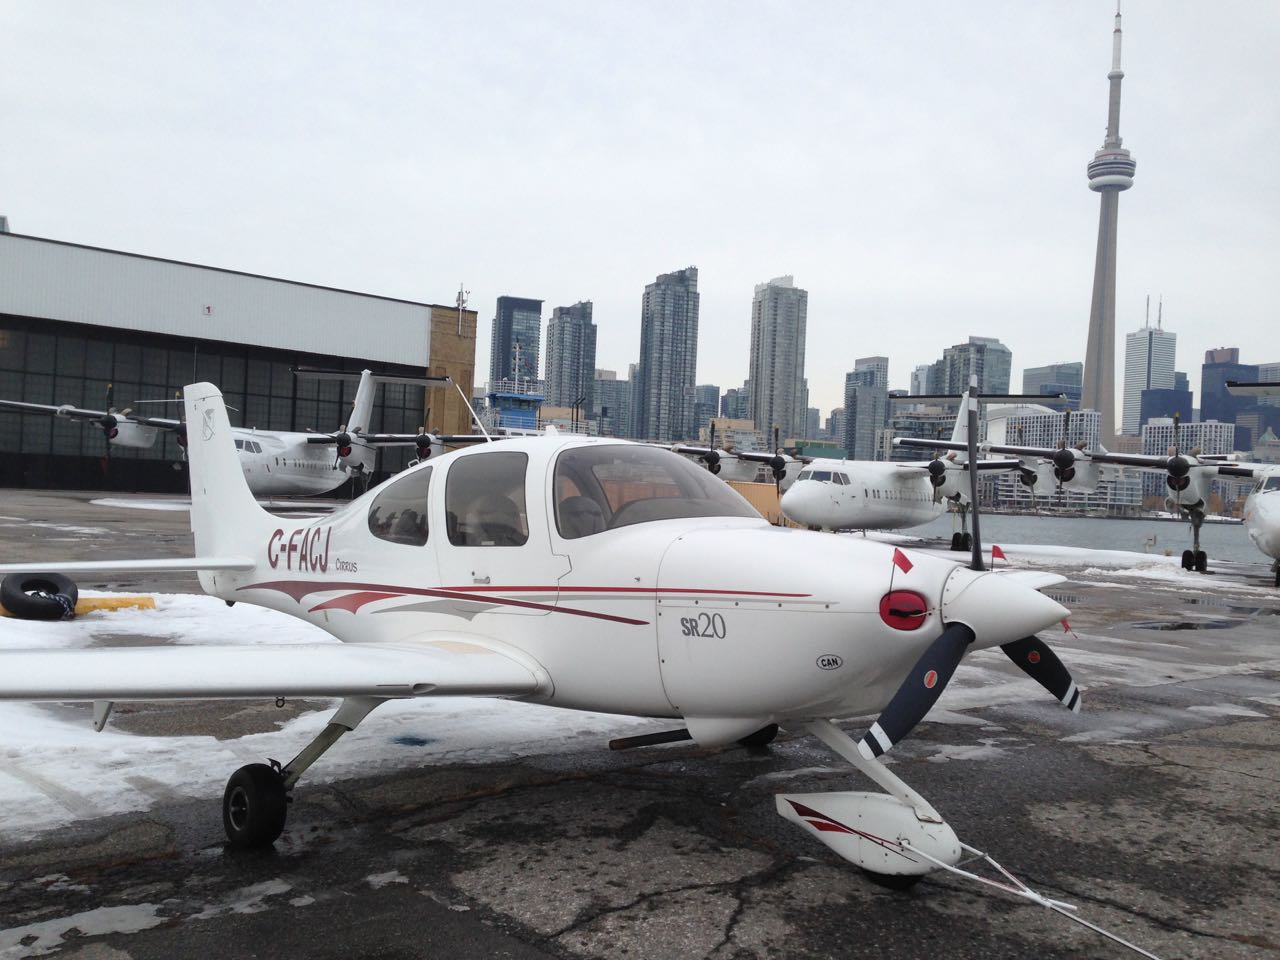 The Cirrus at City airport